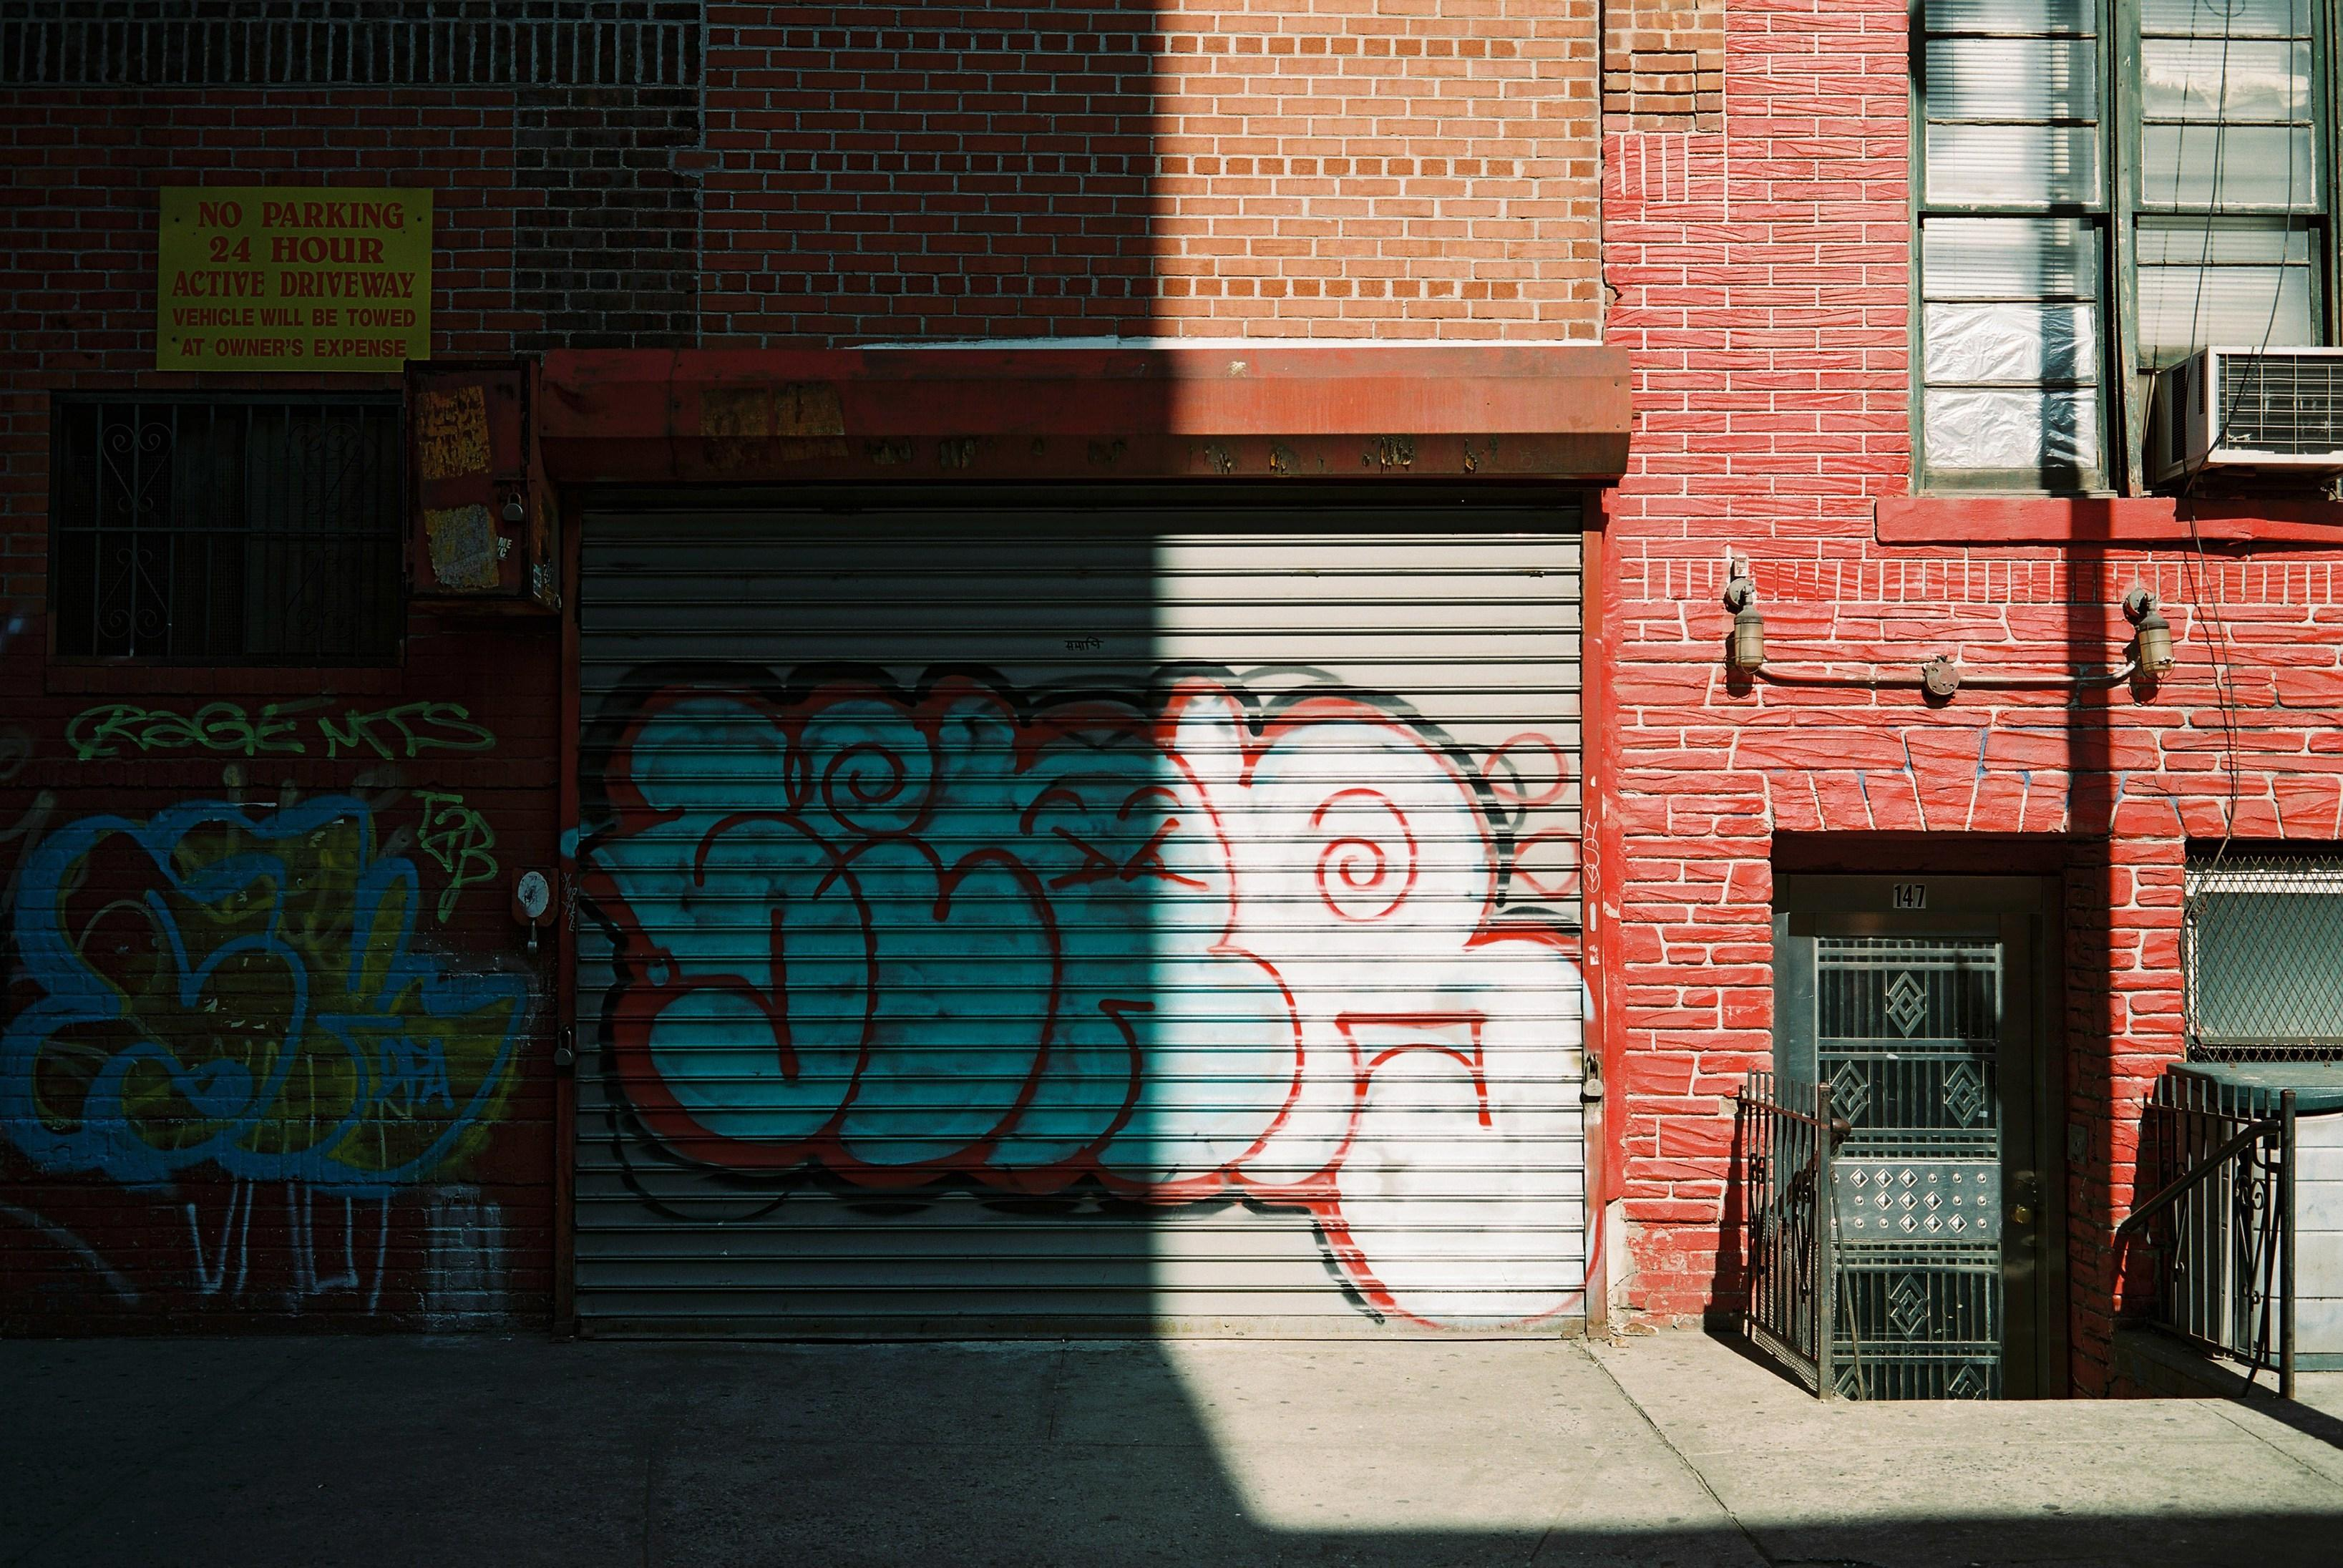 A day in Manhattan - image 4 - student project